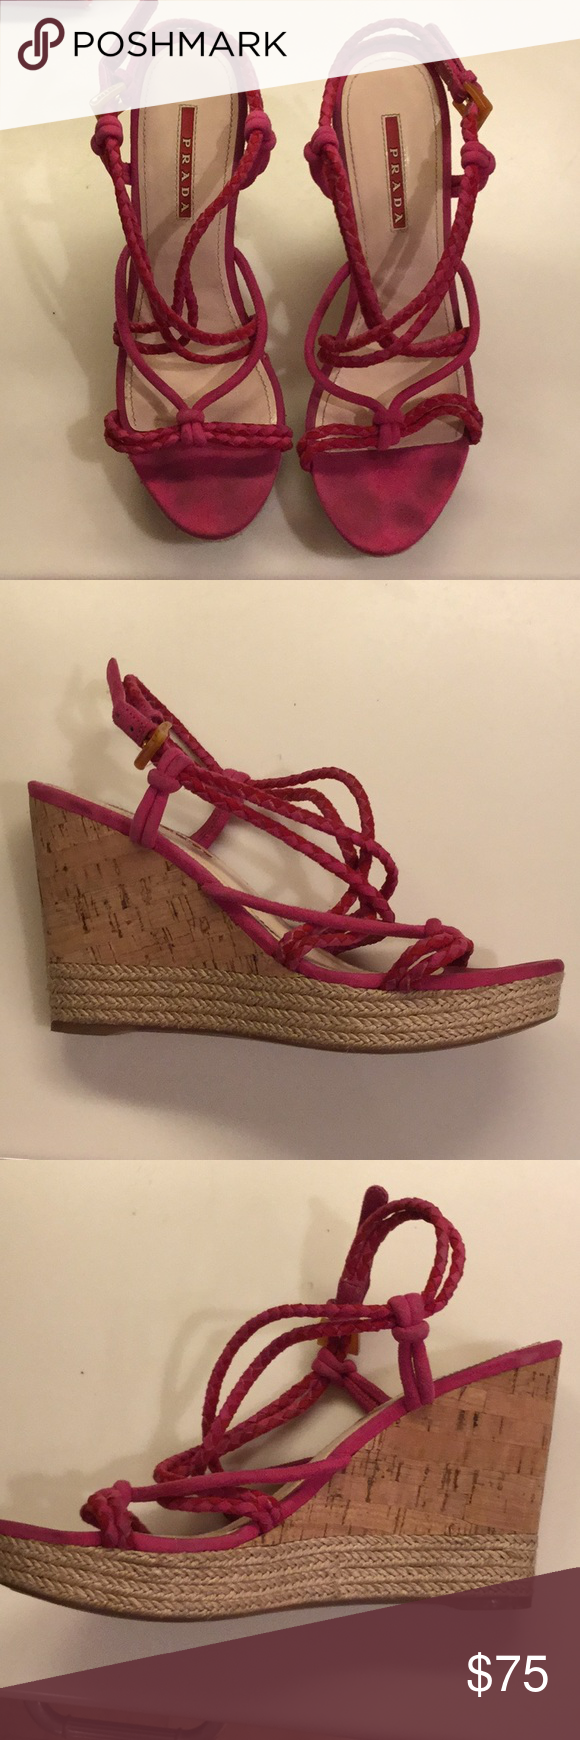 8e2528ca1b47e Prada hot pink suede cork wedge Pink Prada round toe wedge sandals with  cork heels. Jute accent at soles, and buckle closure at ankle. Prada Shoes  Sandals